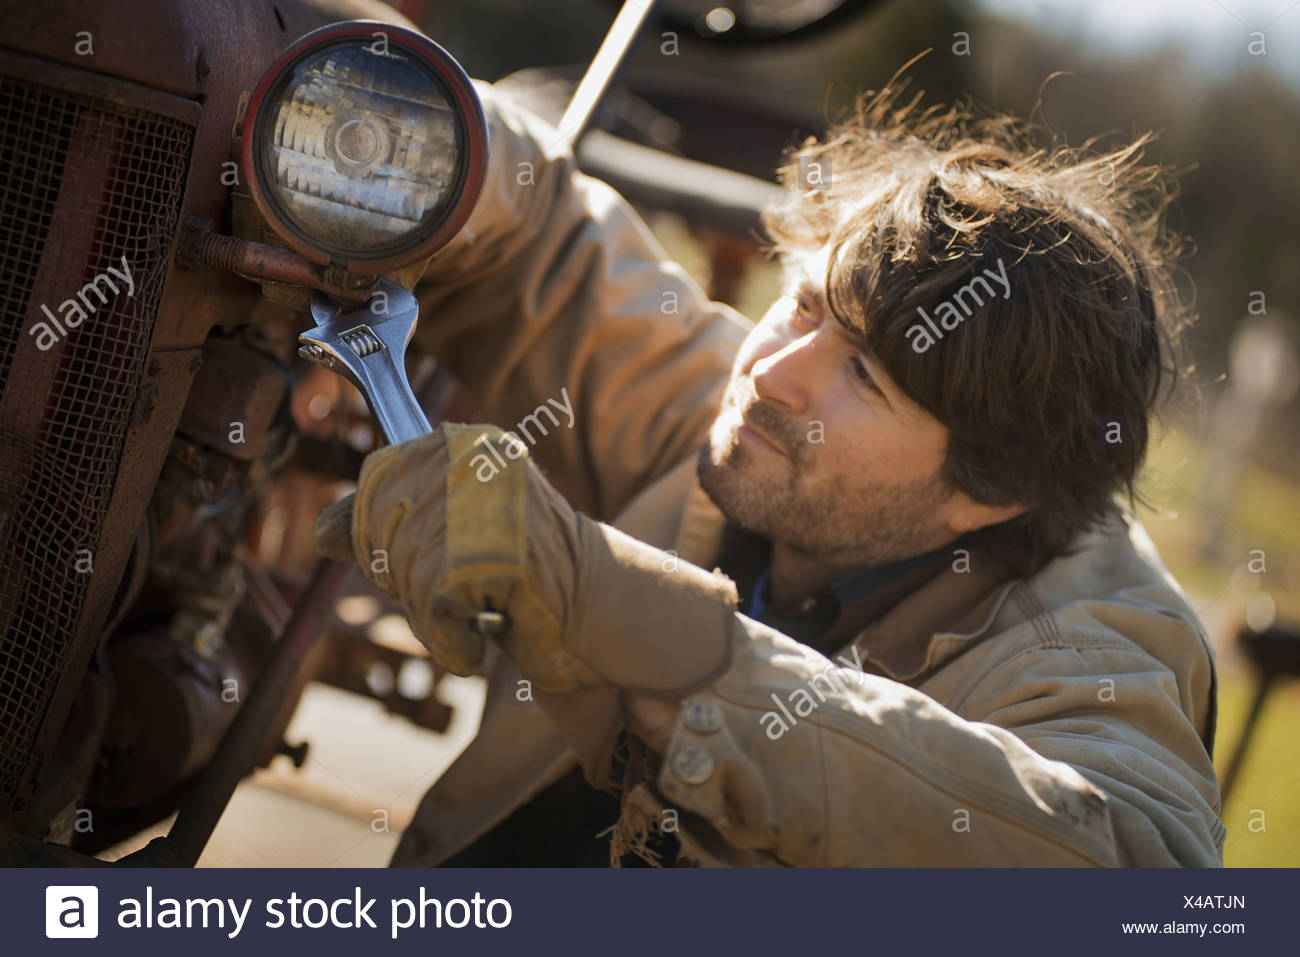 Working on an organic farm A man in a brown jacket using a spanner and working on farm machinery A tractor with a headlight - Stock Image